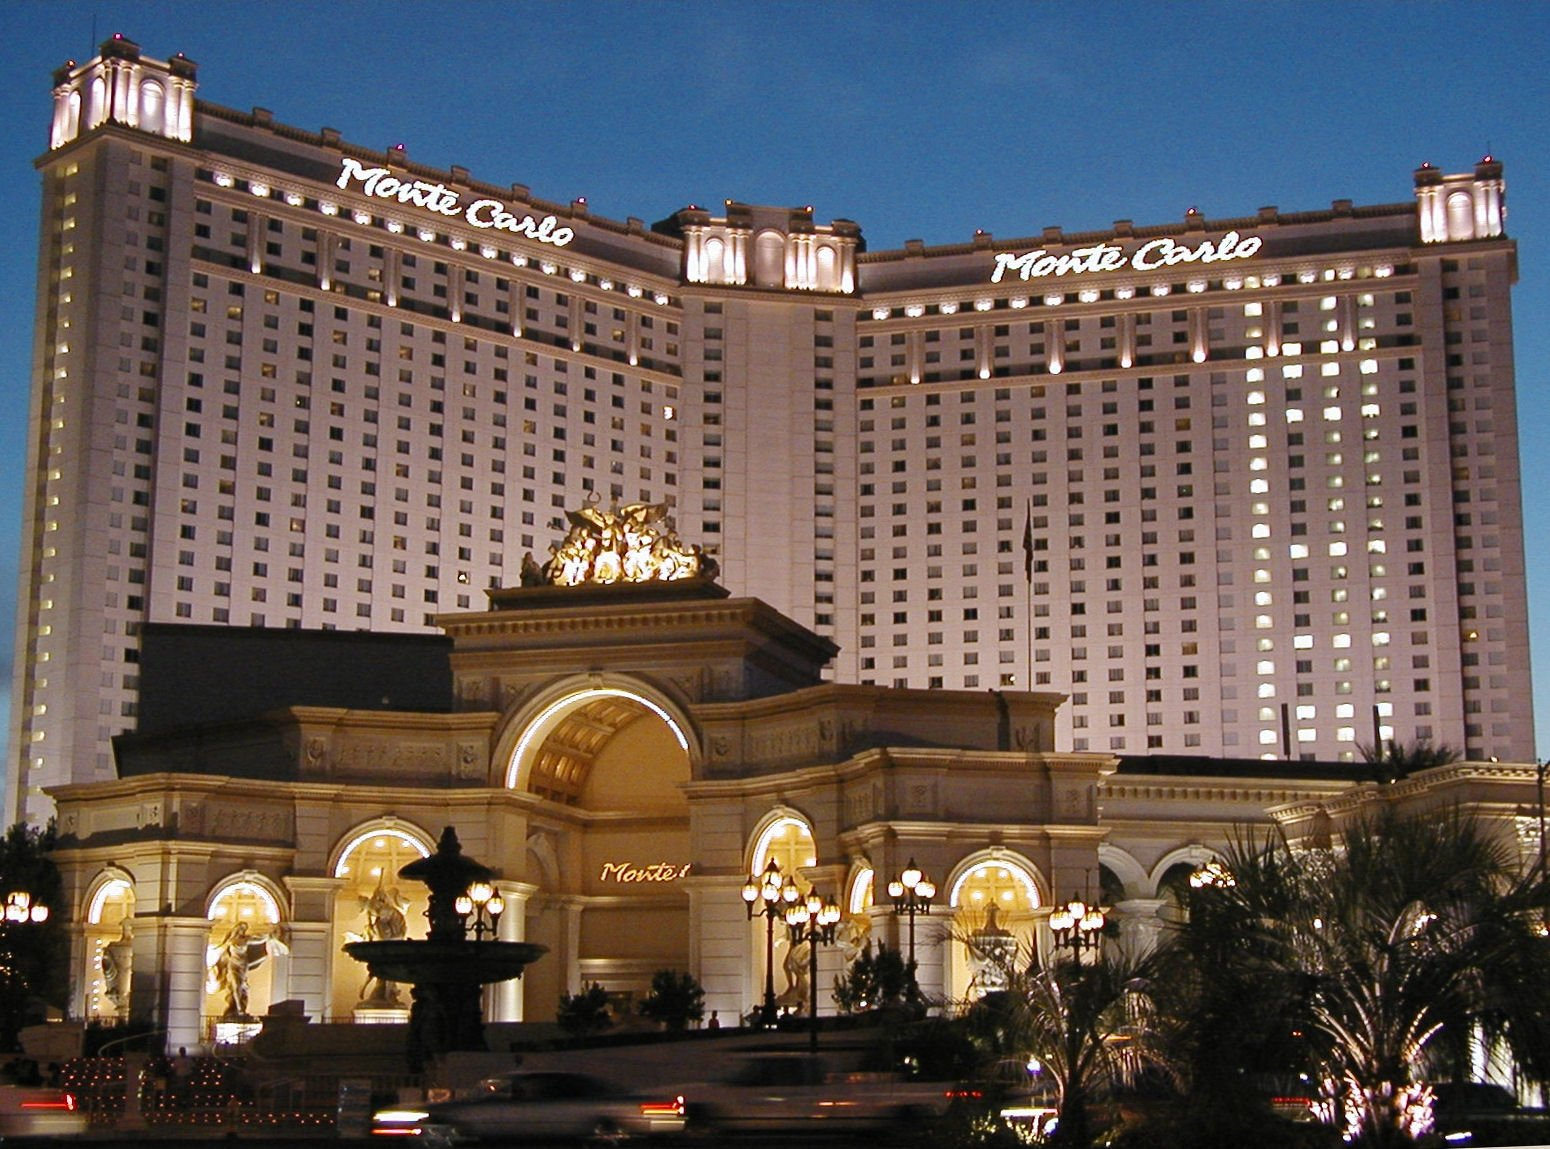 Montecarlo resort and casino nashville gambling laws